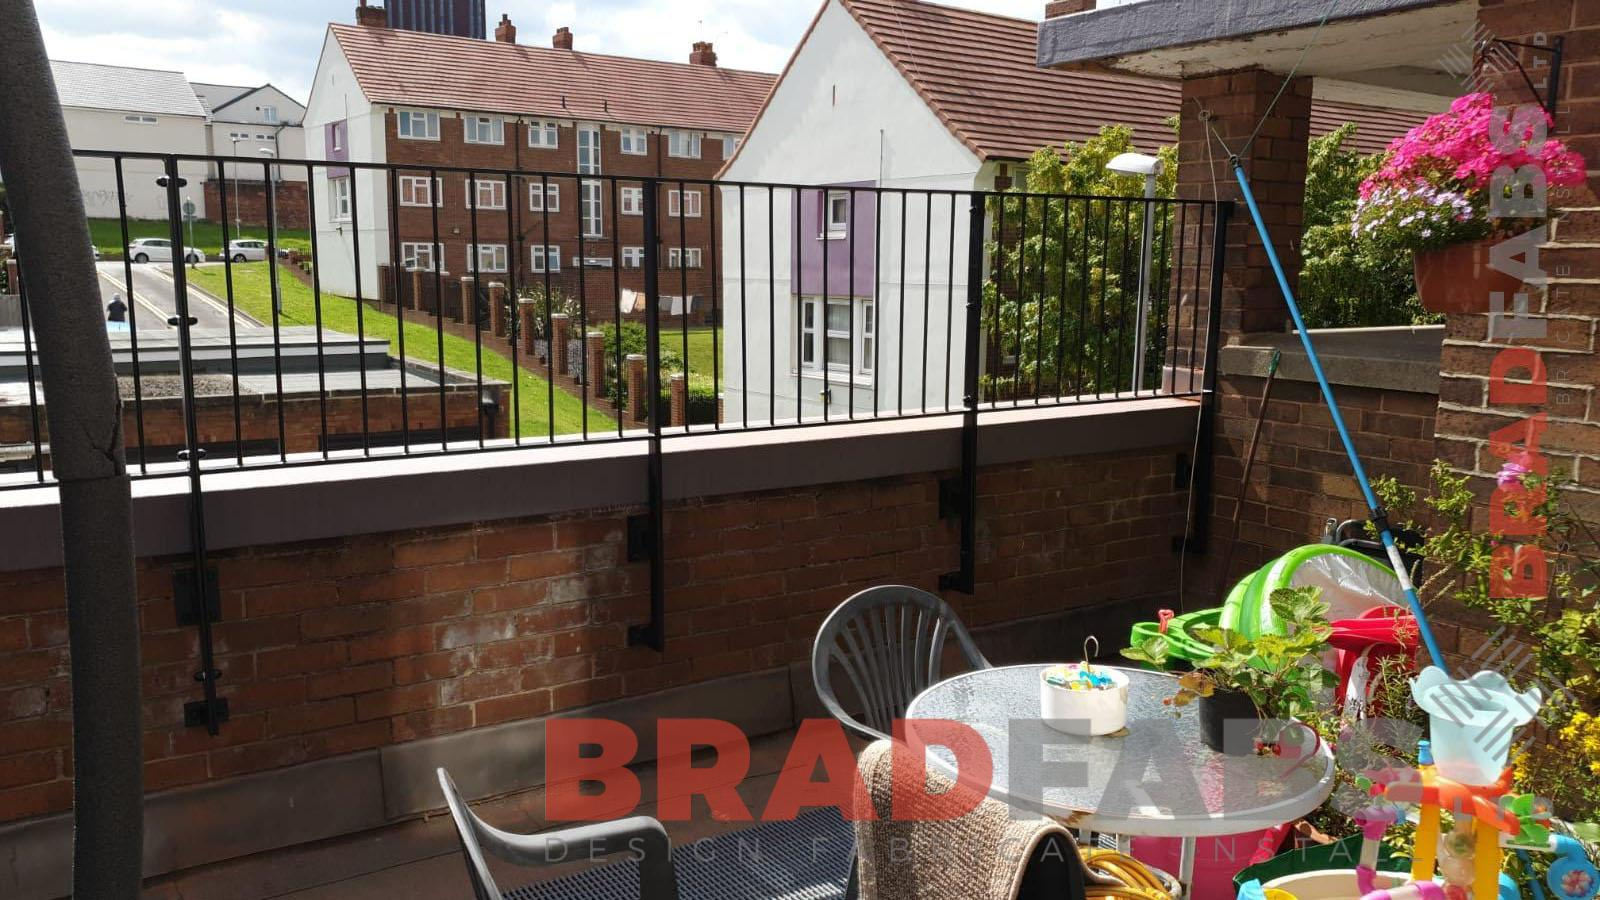 Mild steel, galvanised and powder coated vertical bar balustrade railings by Bradfabs